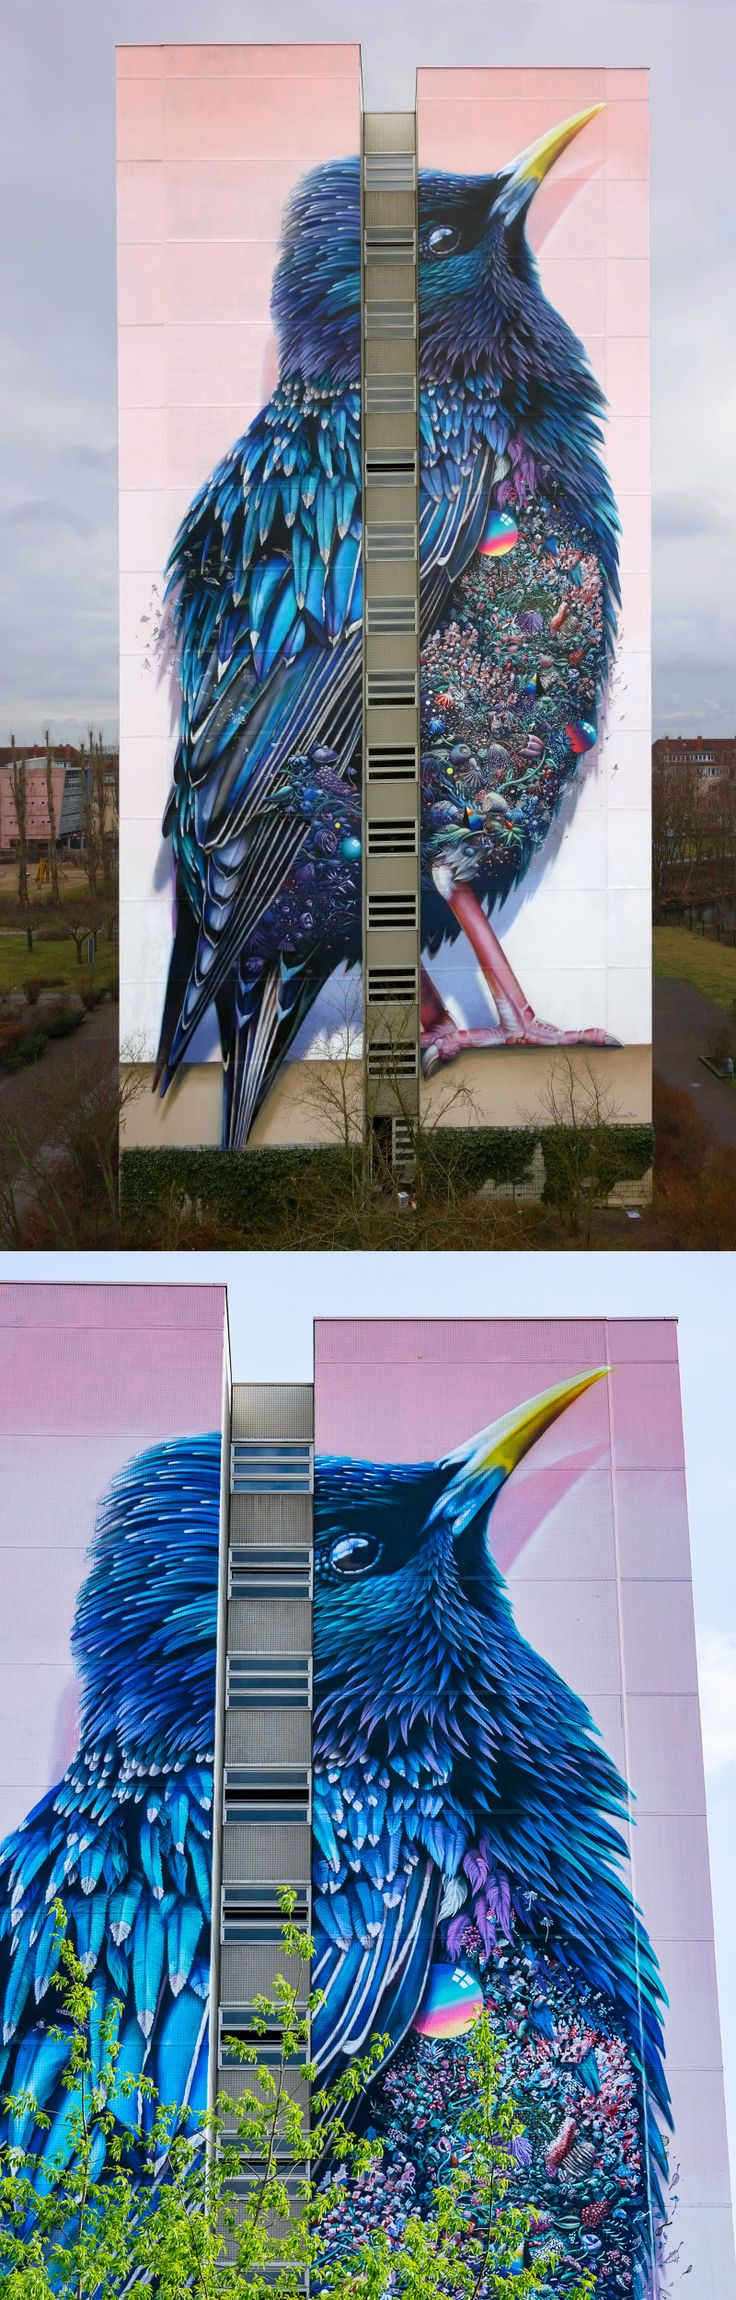 Giant Starling Mural in Berlin by Collin van der Sluijs and Super A